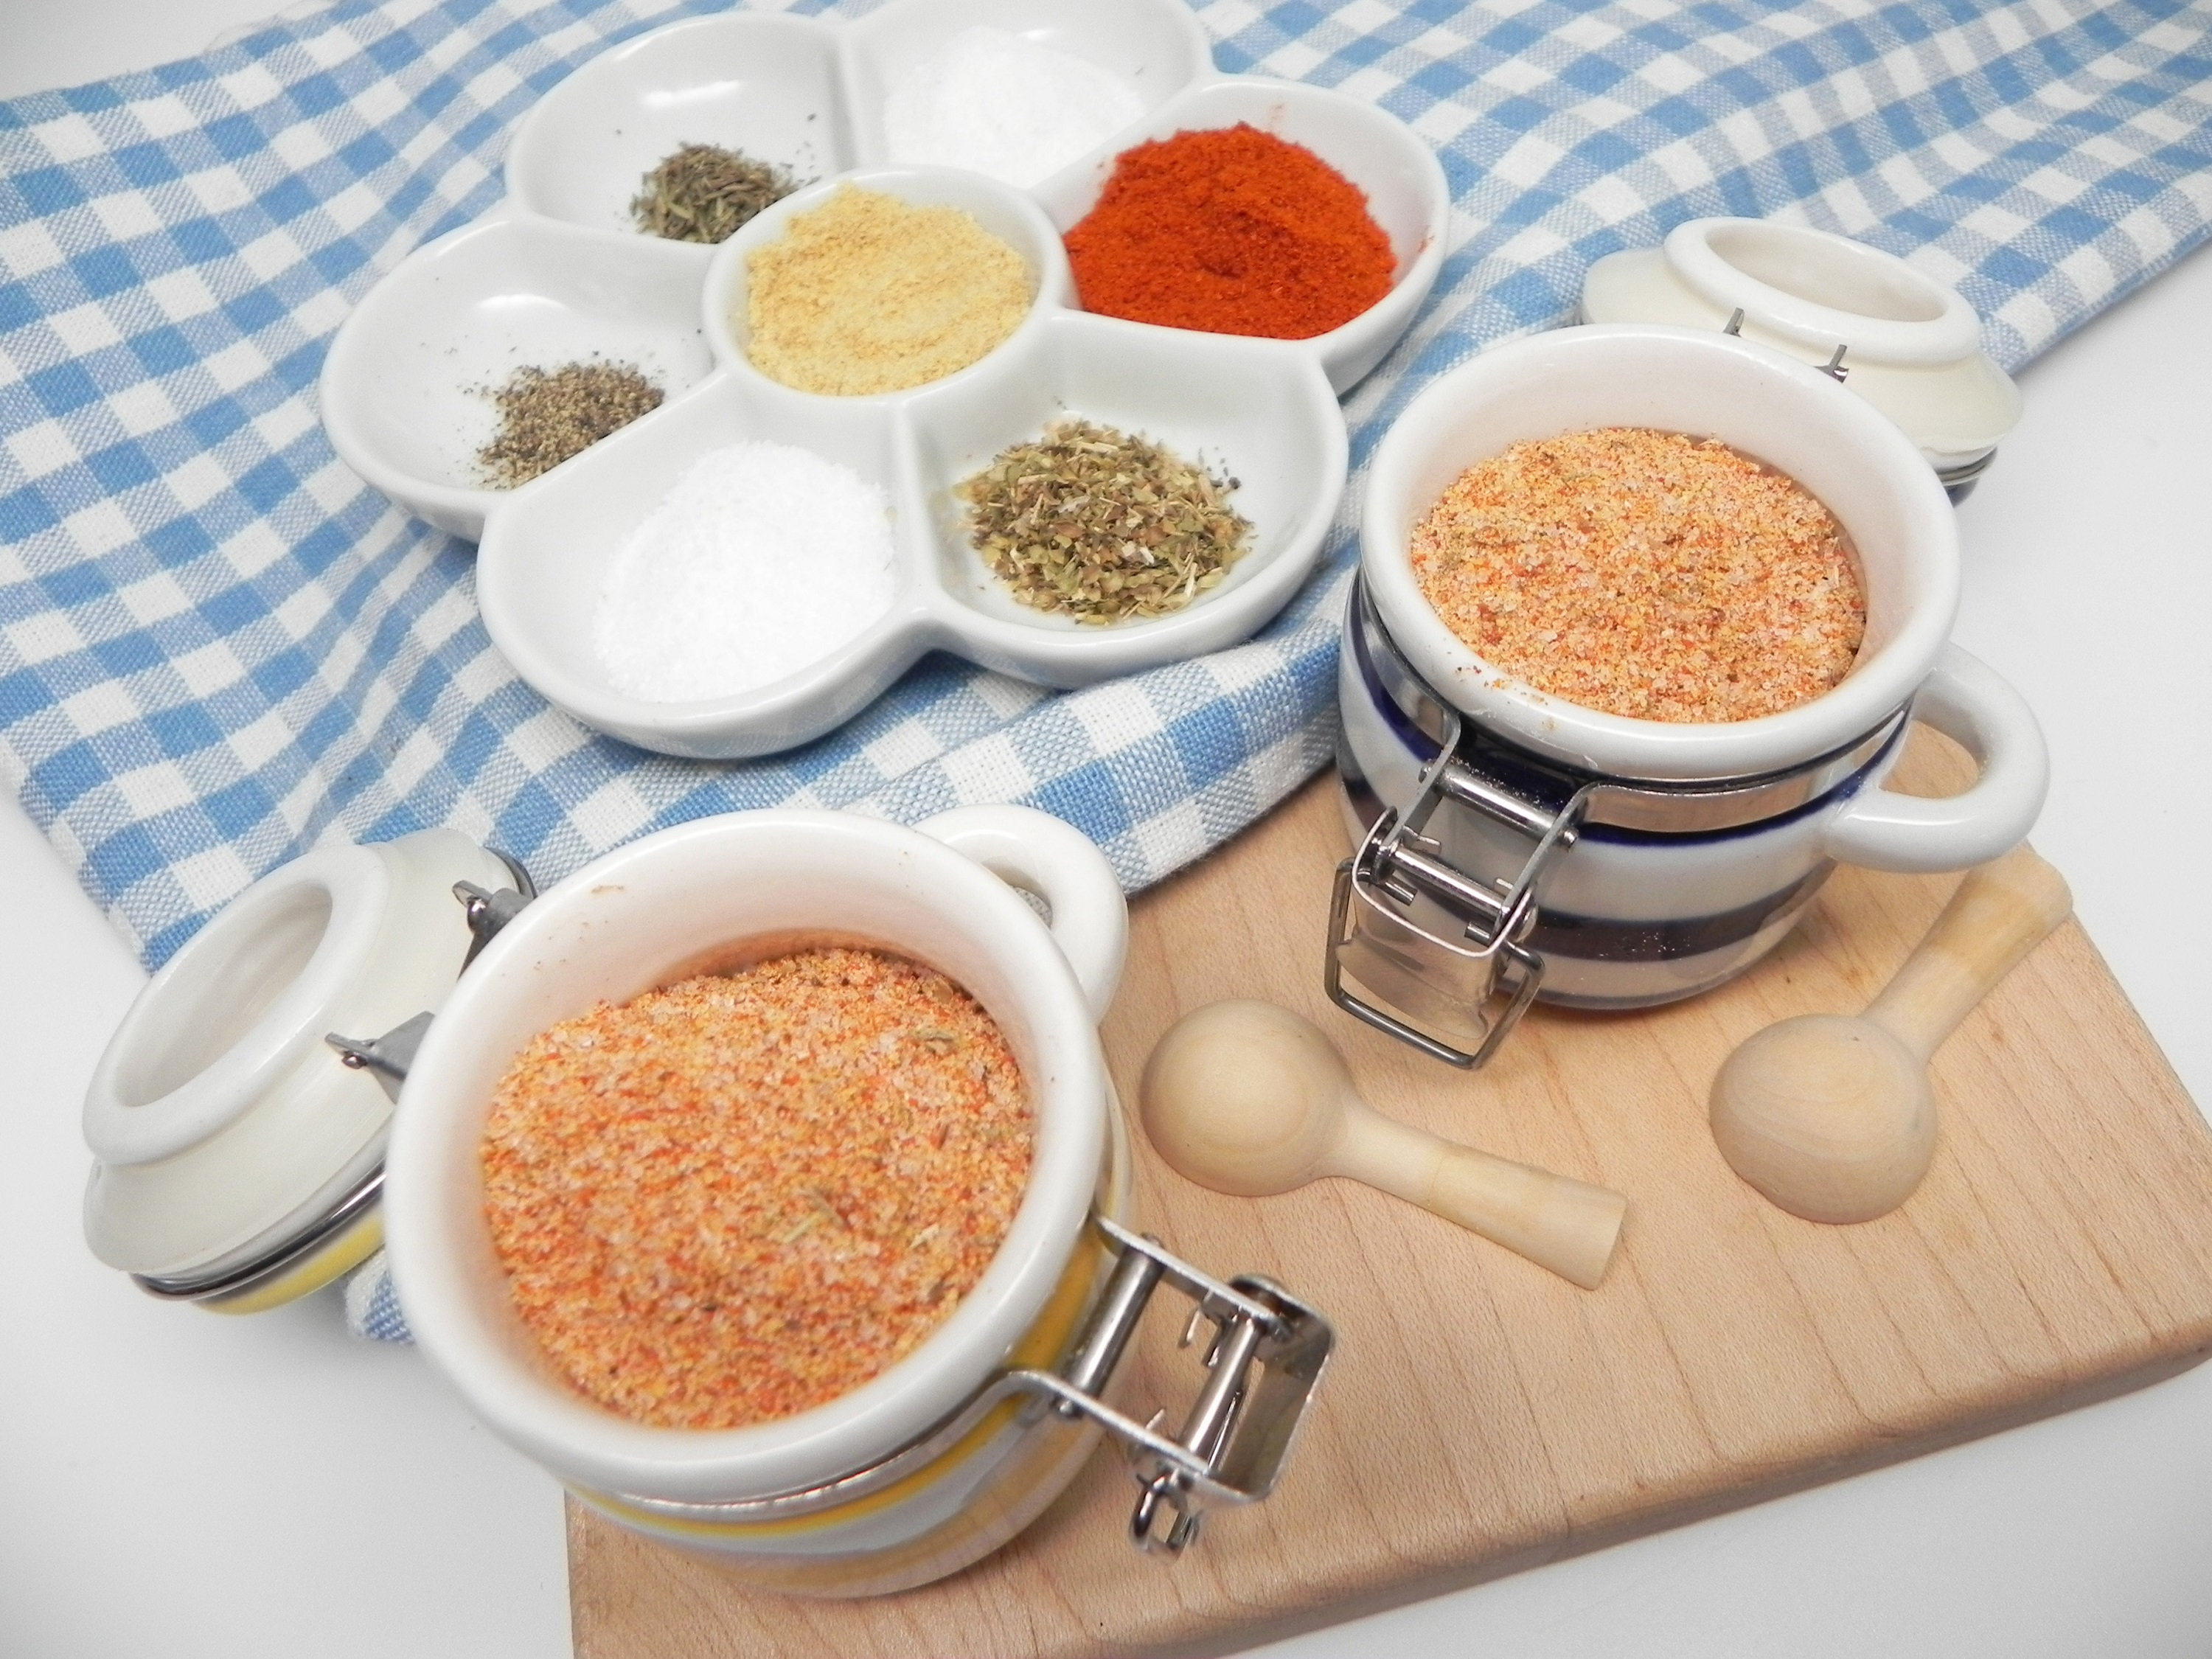 All-Purpose Rub for Meat